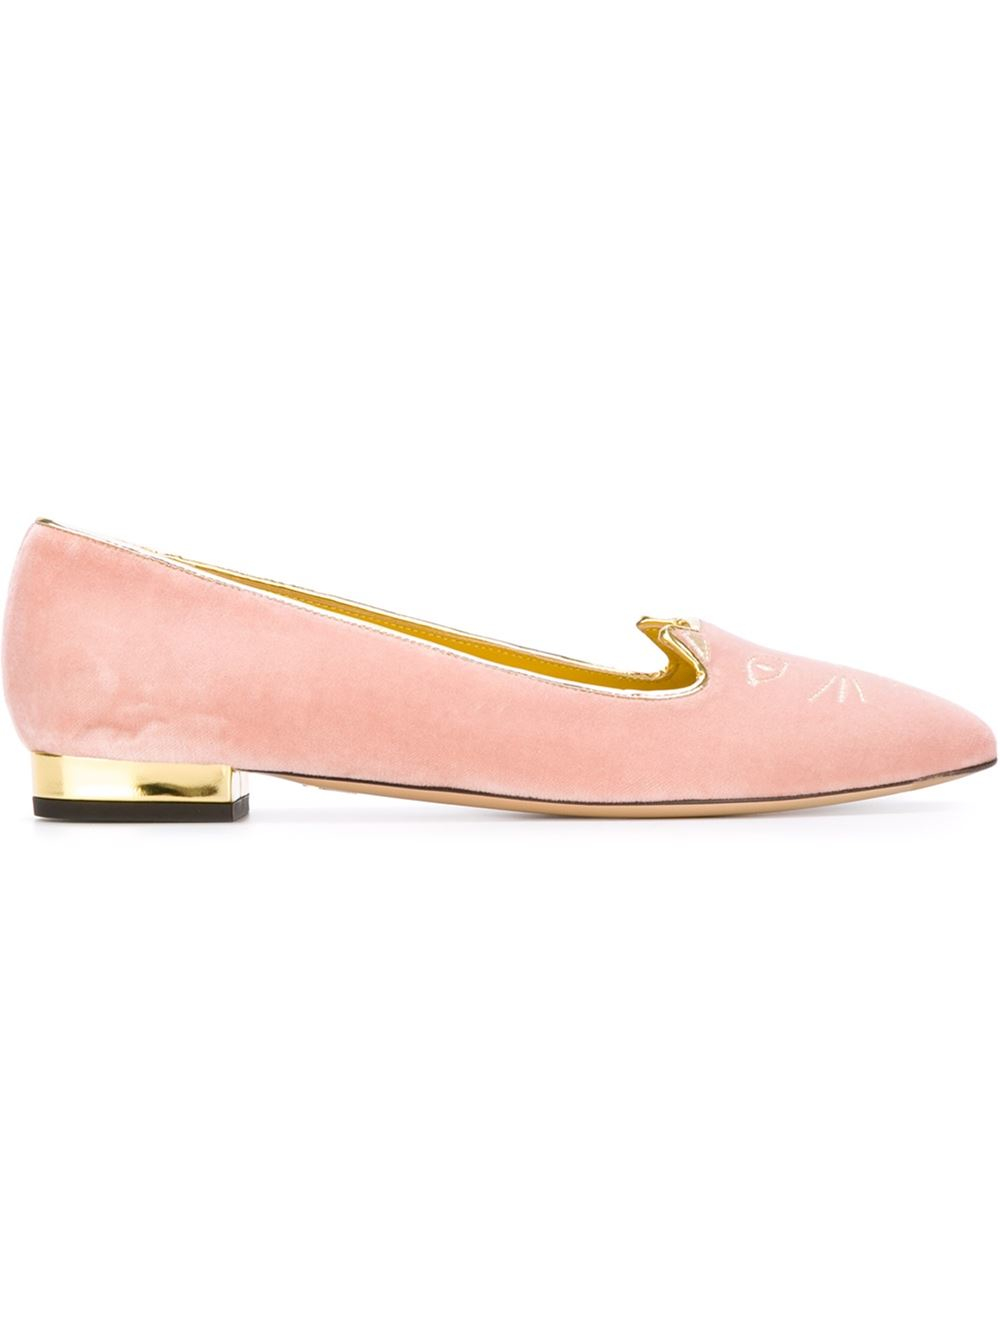 discount outlet sale official site Charlotte Olympia Mid-Century Kitty Flats w/ Tags sale fashion Style UPJFZw7w9